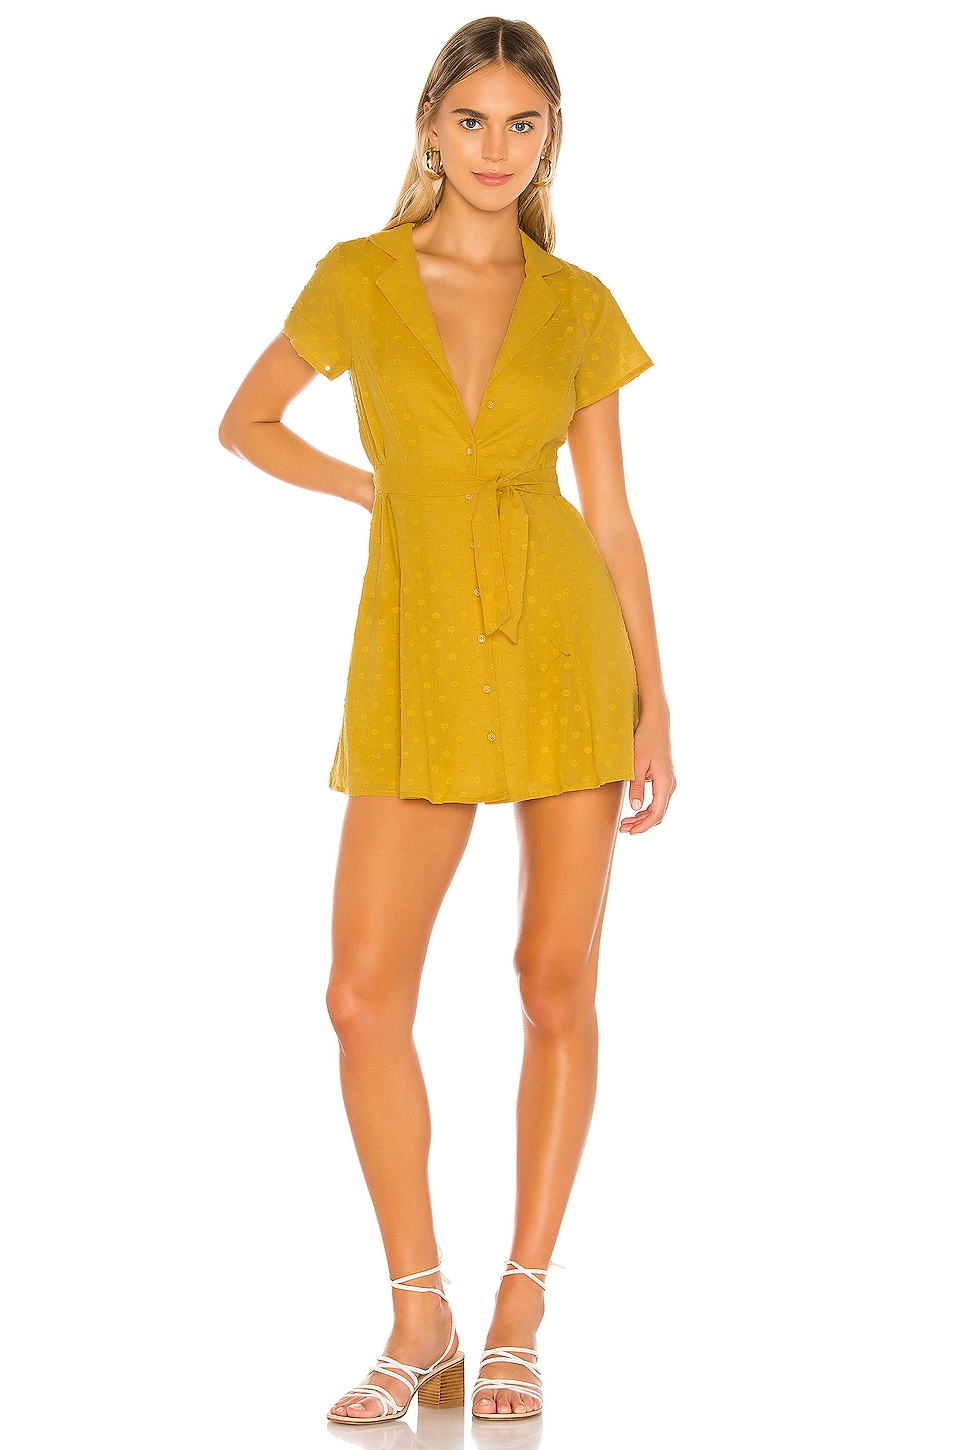 MAJORELLE Tumbleweed Dress in Gold